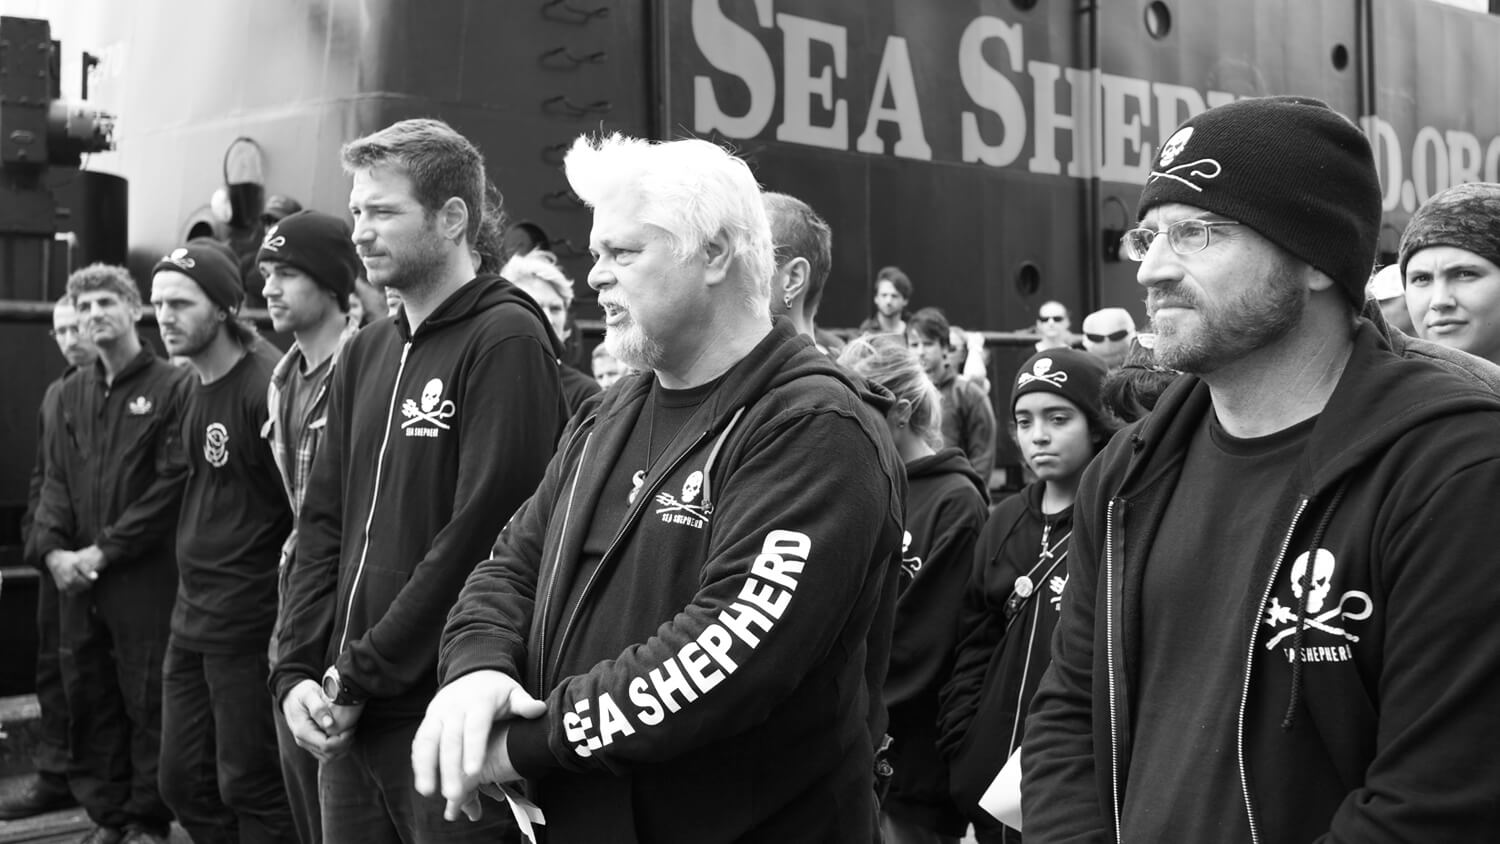 Courtesy of Sea Shepherd